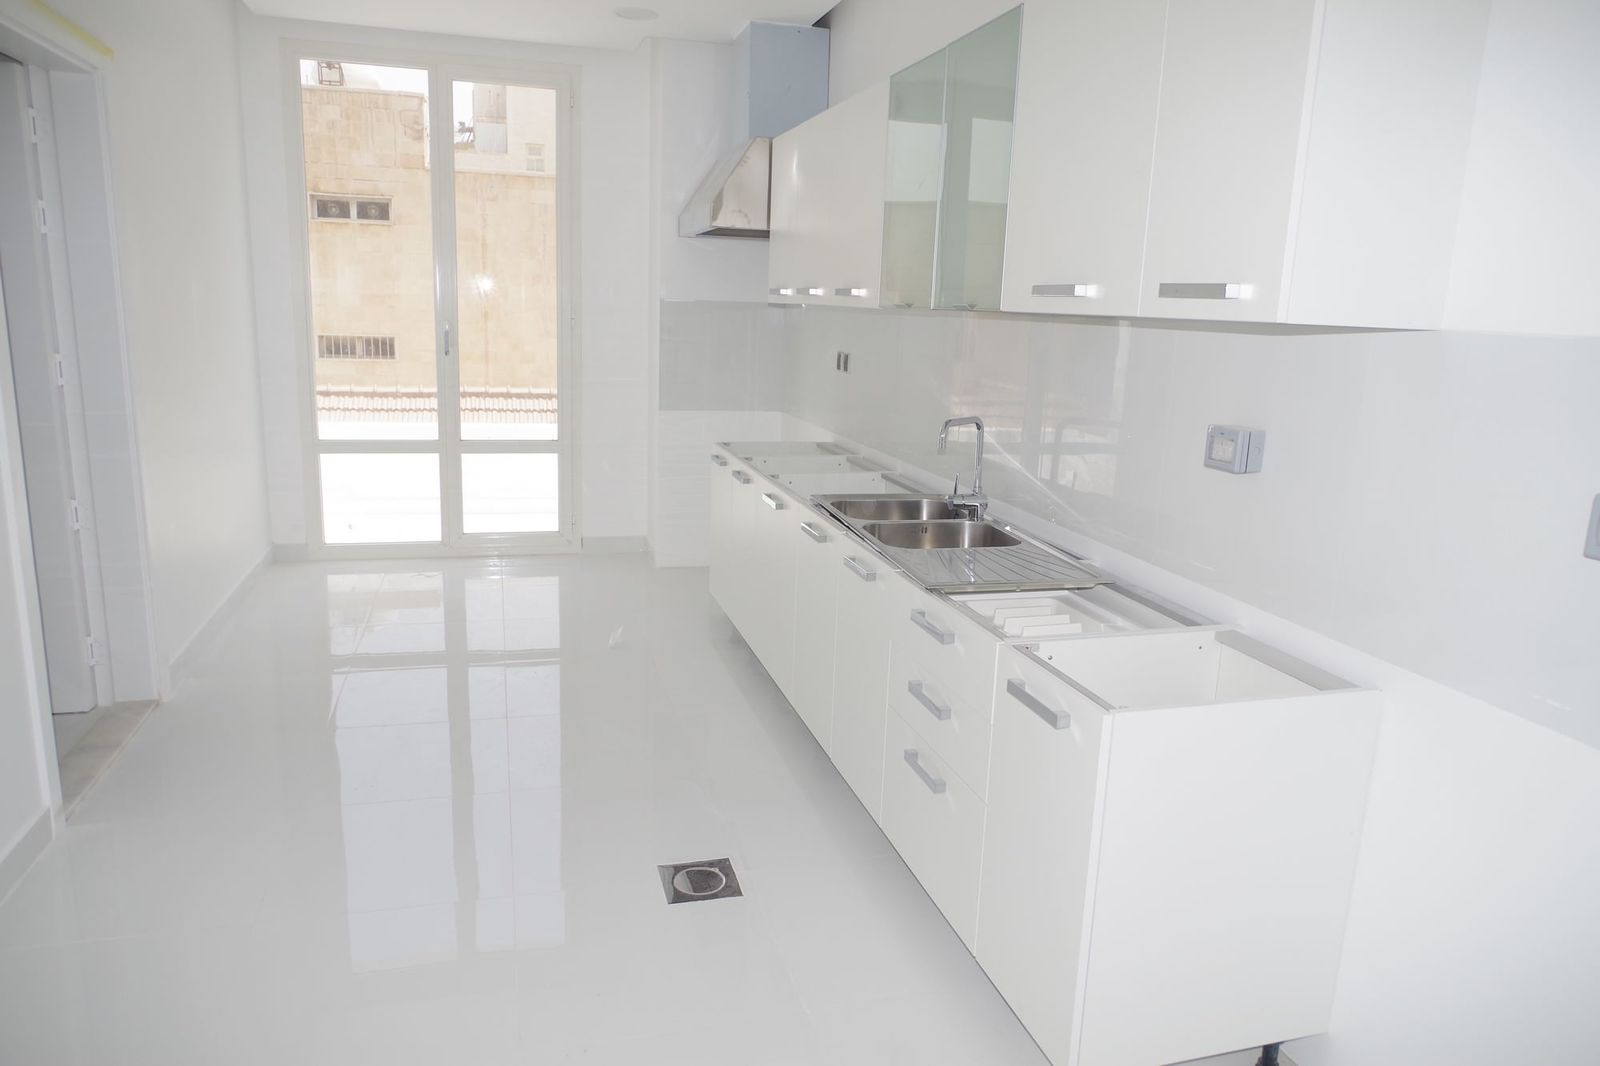 Shaab – large, unfurnished, four bedroom floors